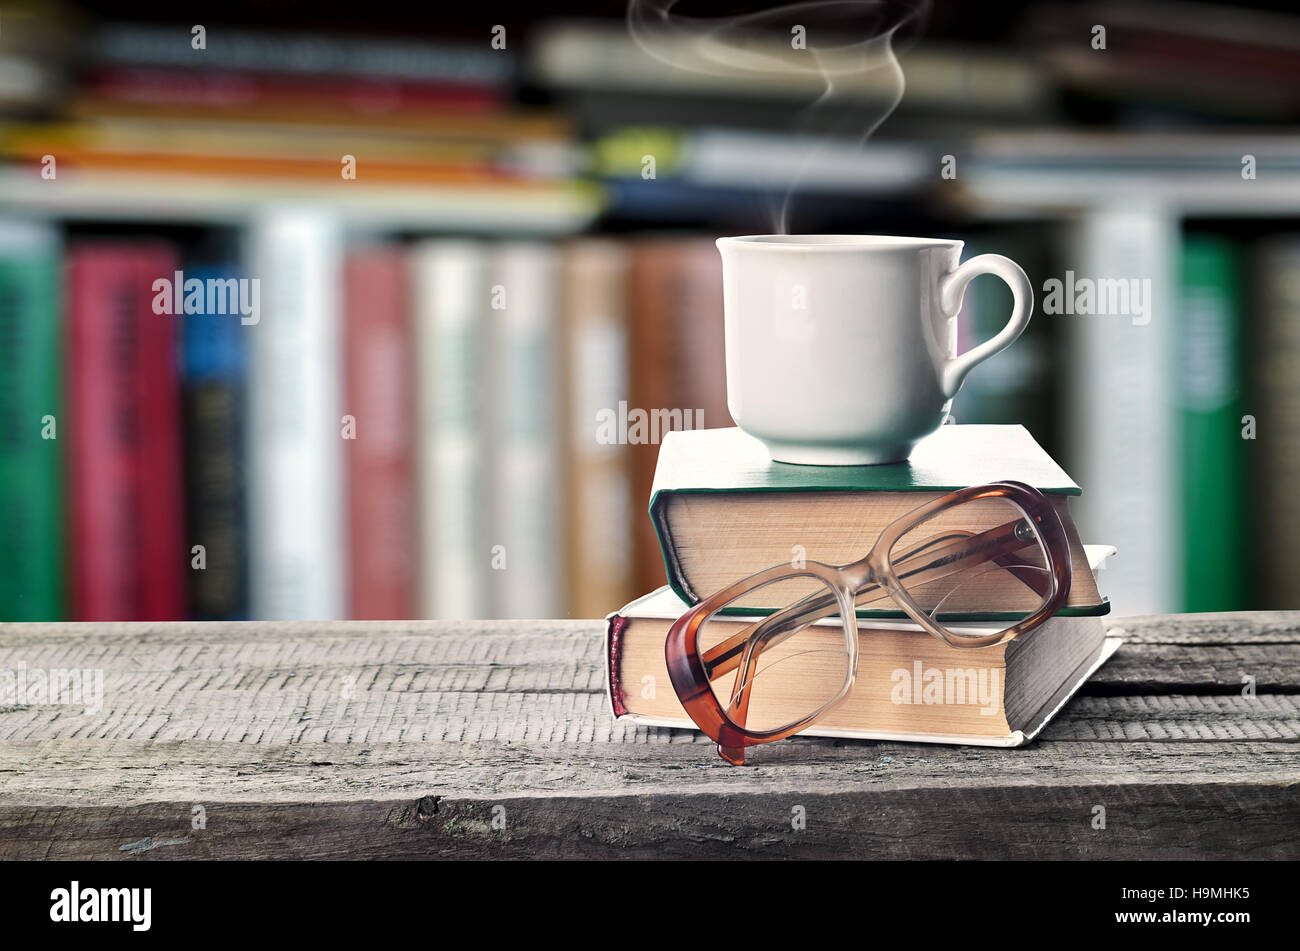 Hot Coffee Or Tea Cocoa Chocolate Cup On Book And Eyeglasses With Copy Space For Text Against The Background Of A Bookshelf Pile Books